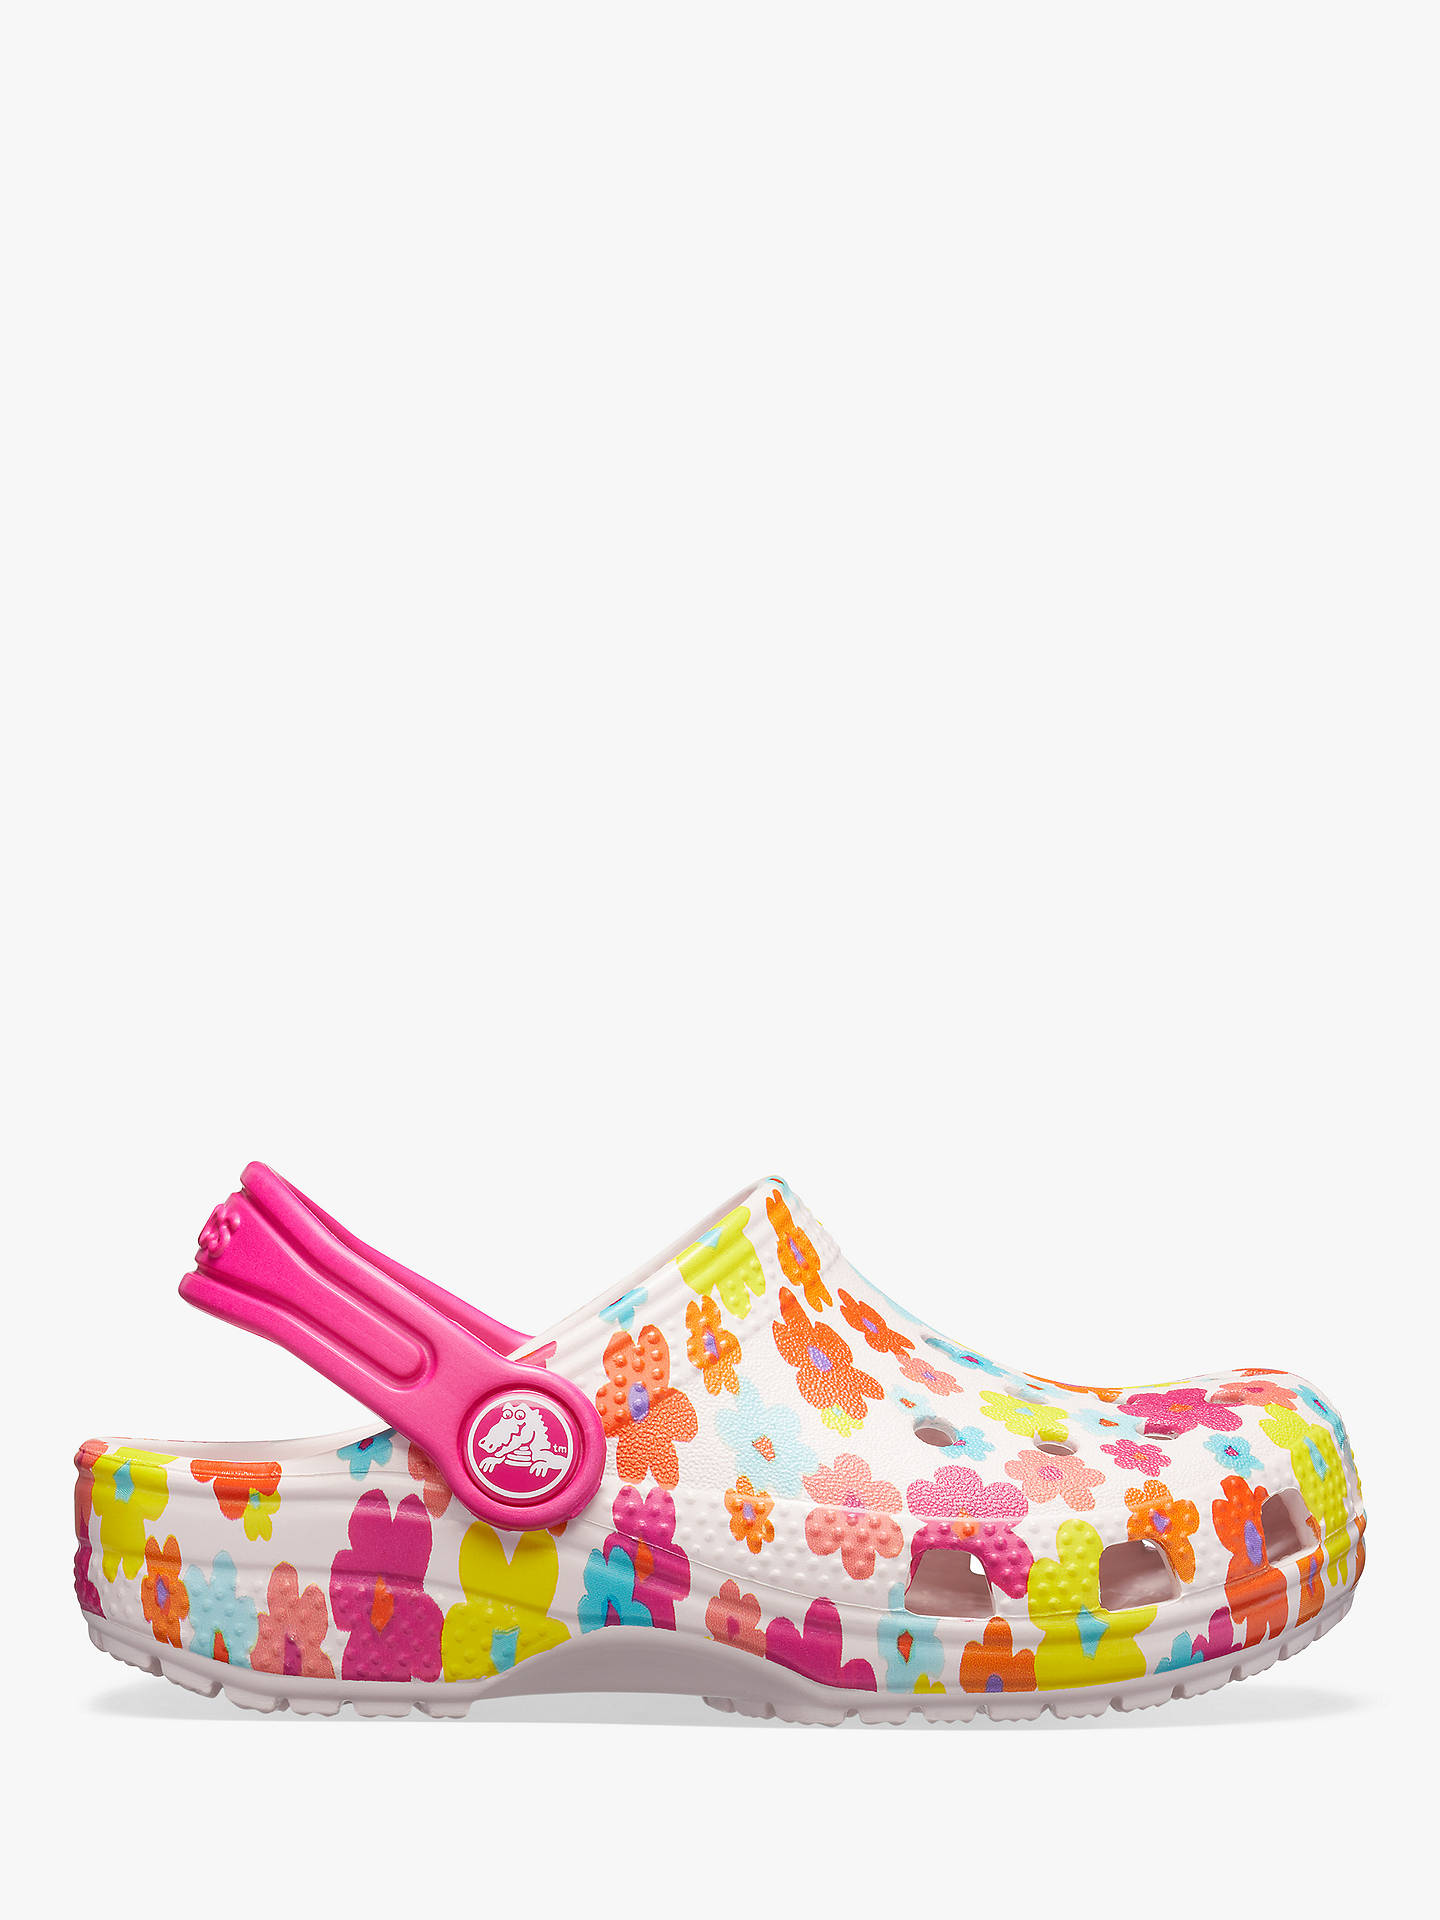 06f70c2a3a96c Buy Crocs Children's Classic Croc Floral Graphic Clogs, Barely Pink, 13 Jnr  Online at